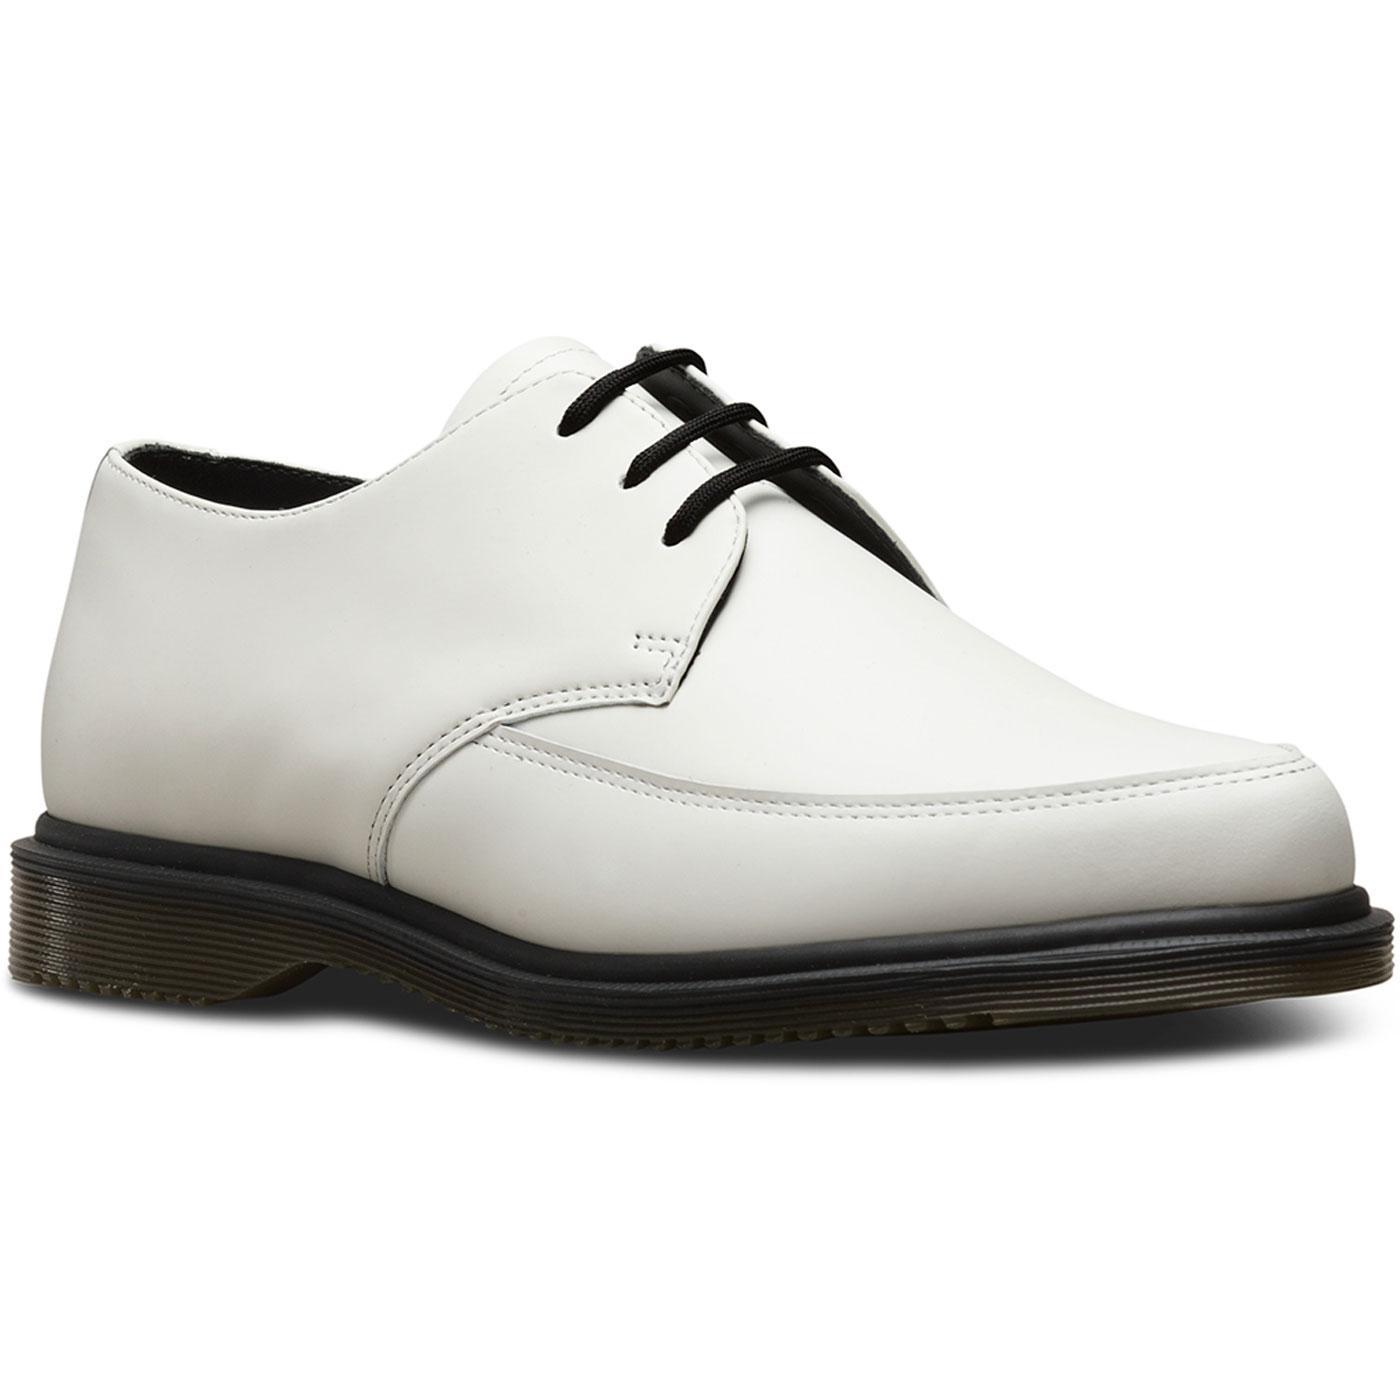 Willis DR MARTENS MENS 1950s Smooth Creepers White